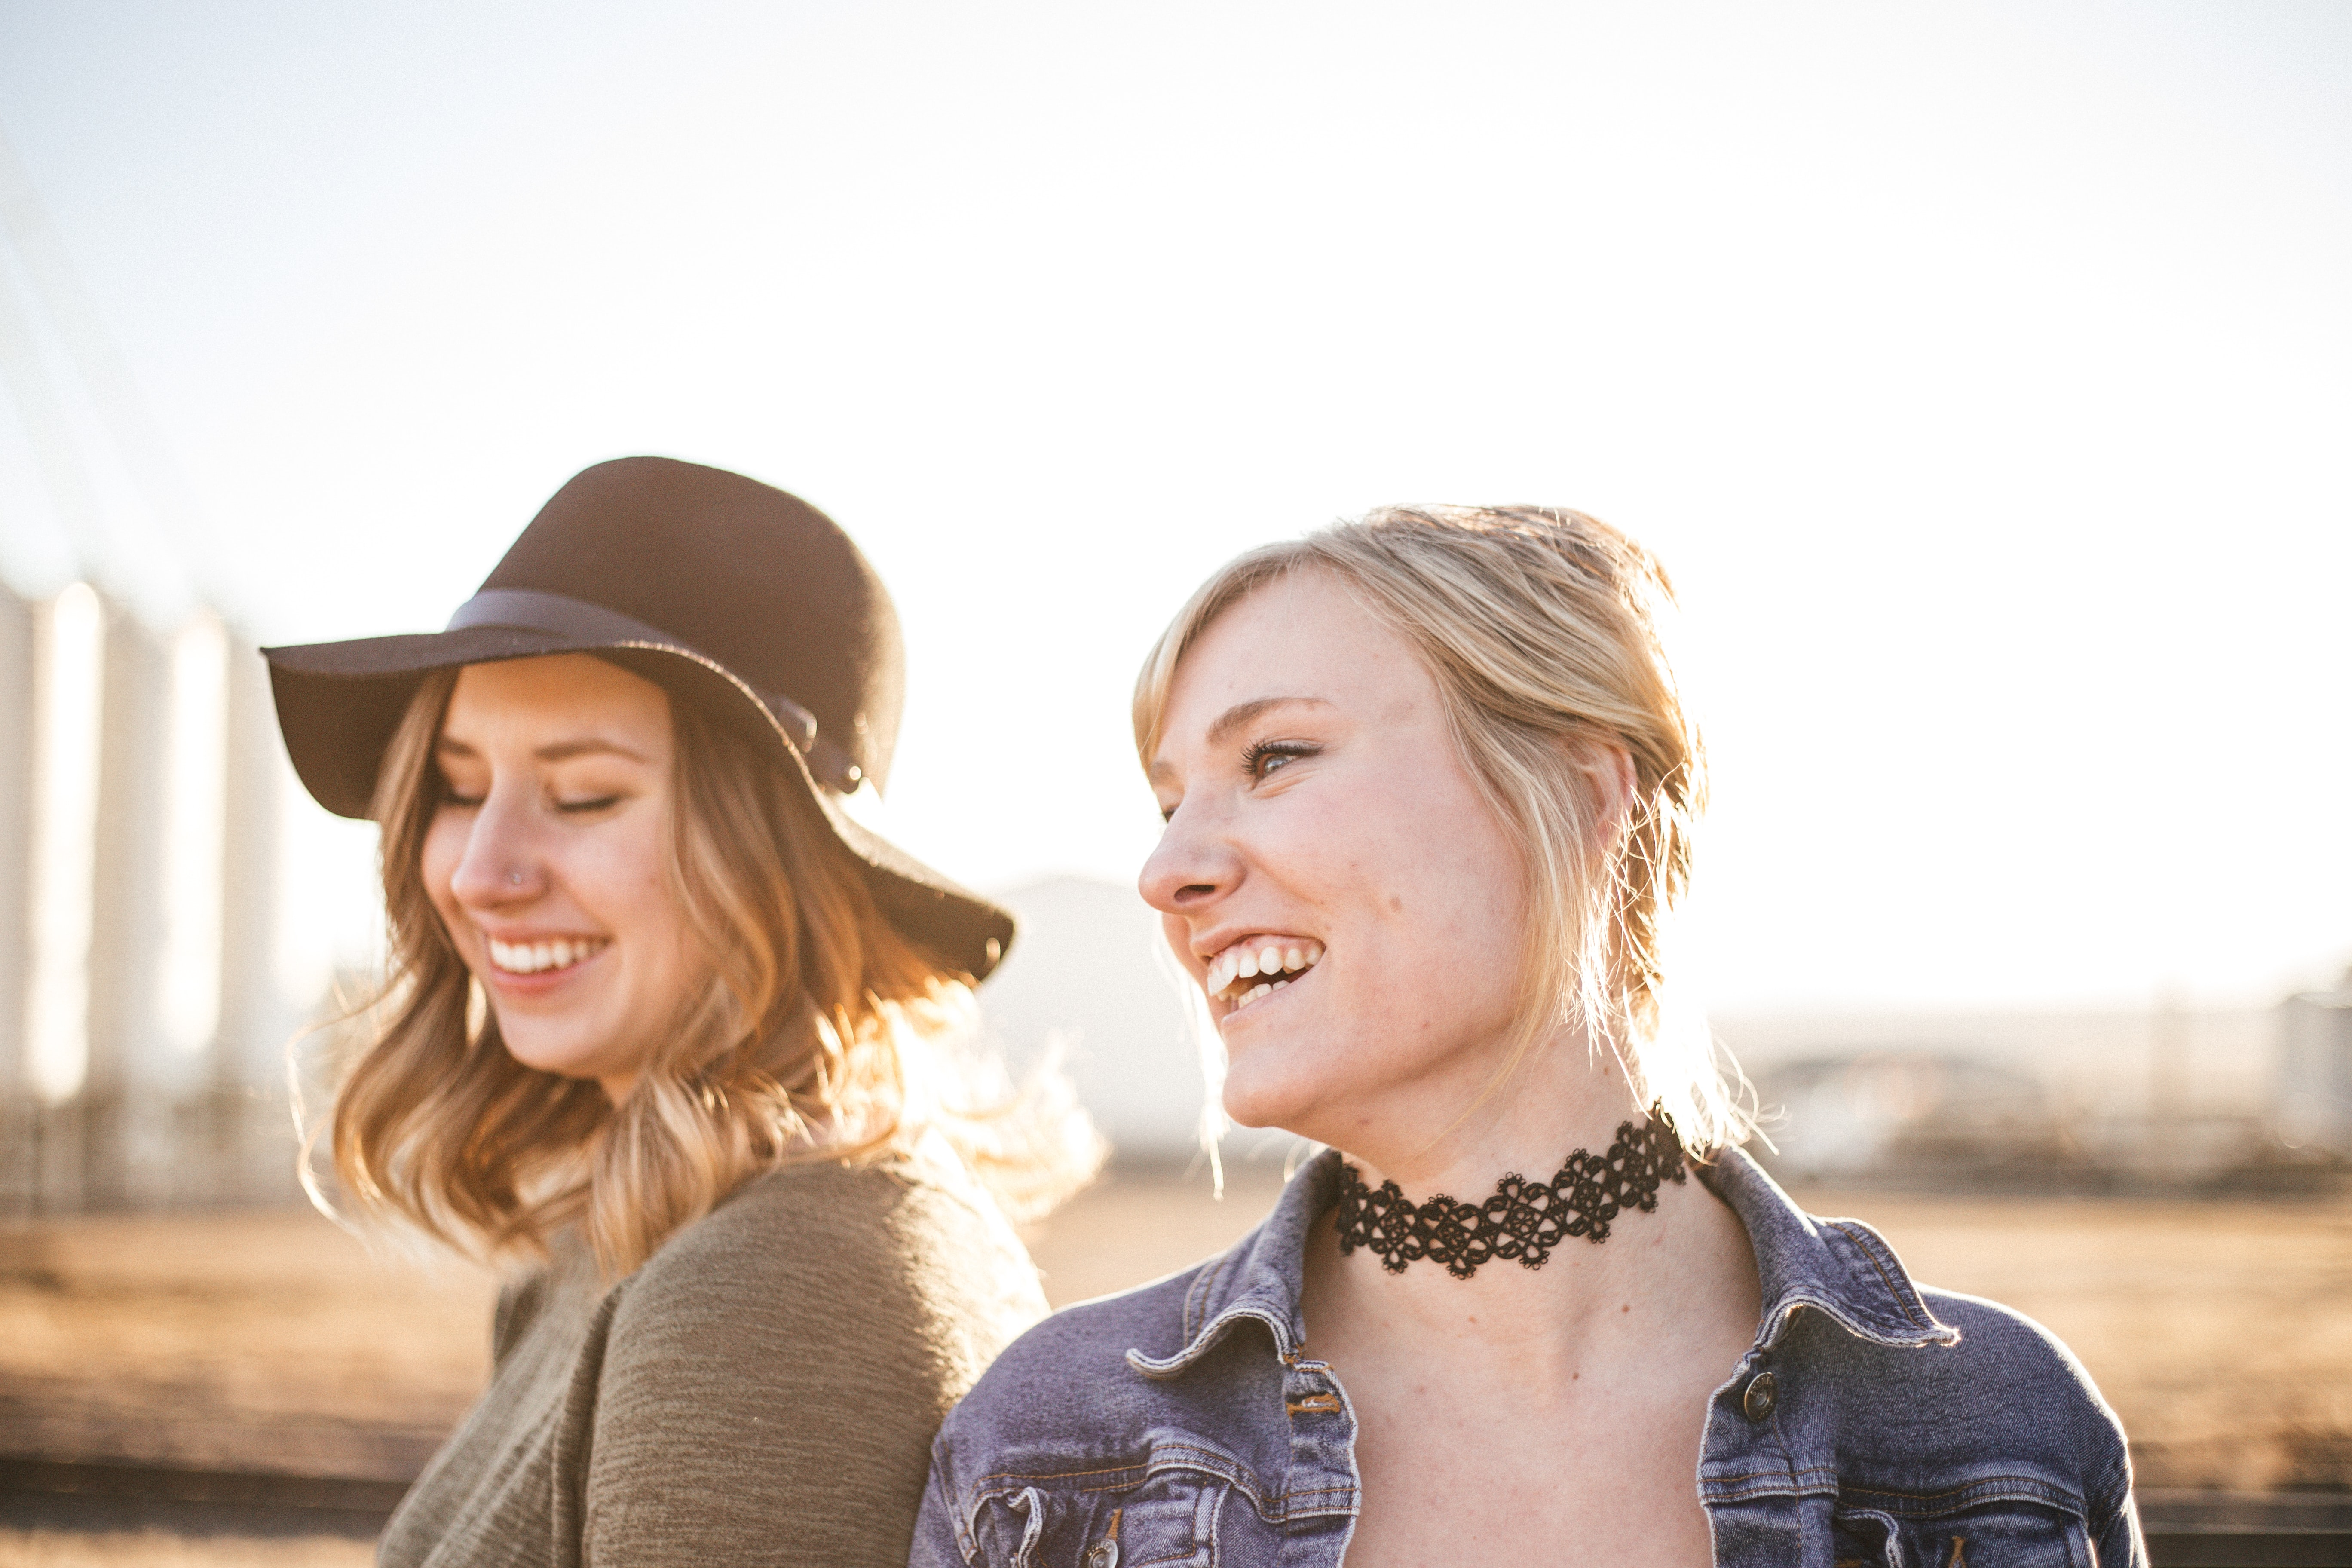 Two women in a hat and choker stand closely, laughing, against a blurry outdoor background